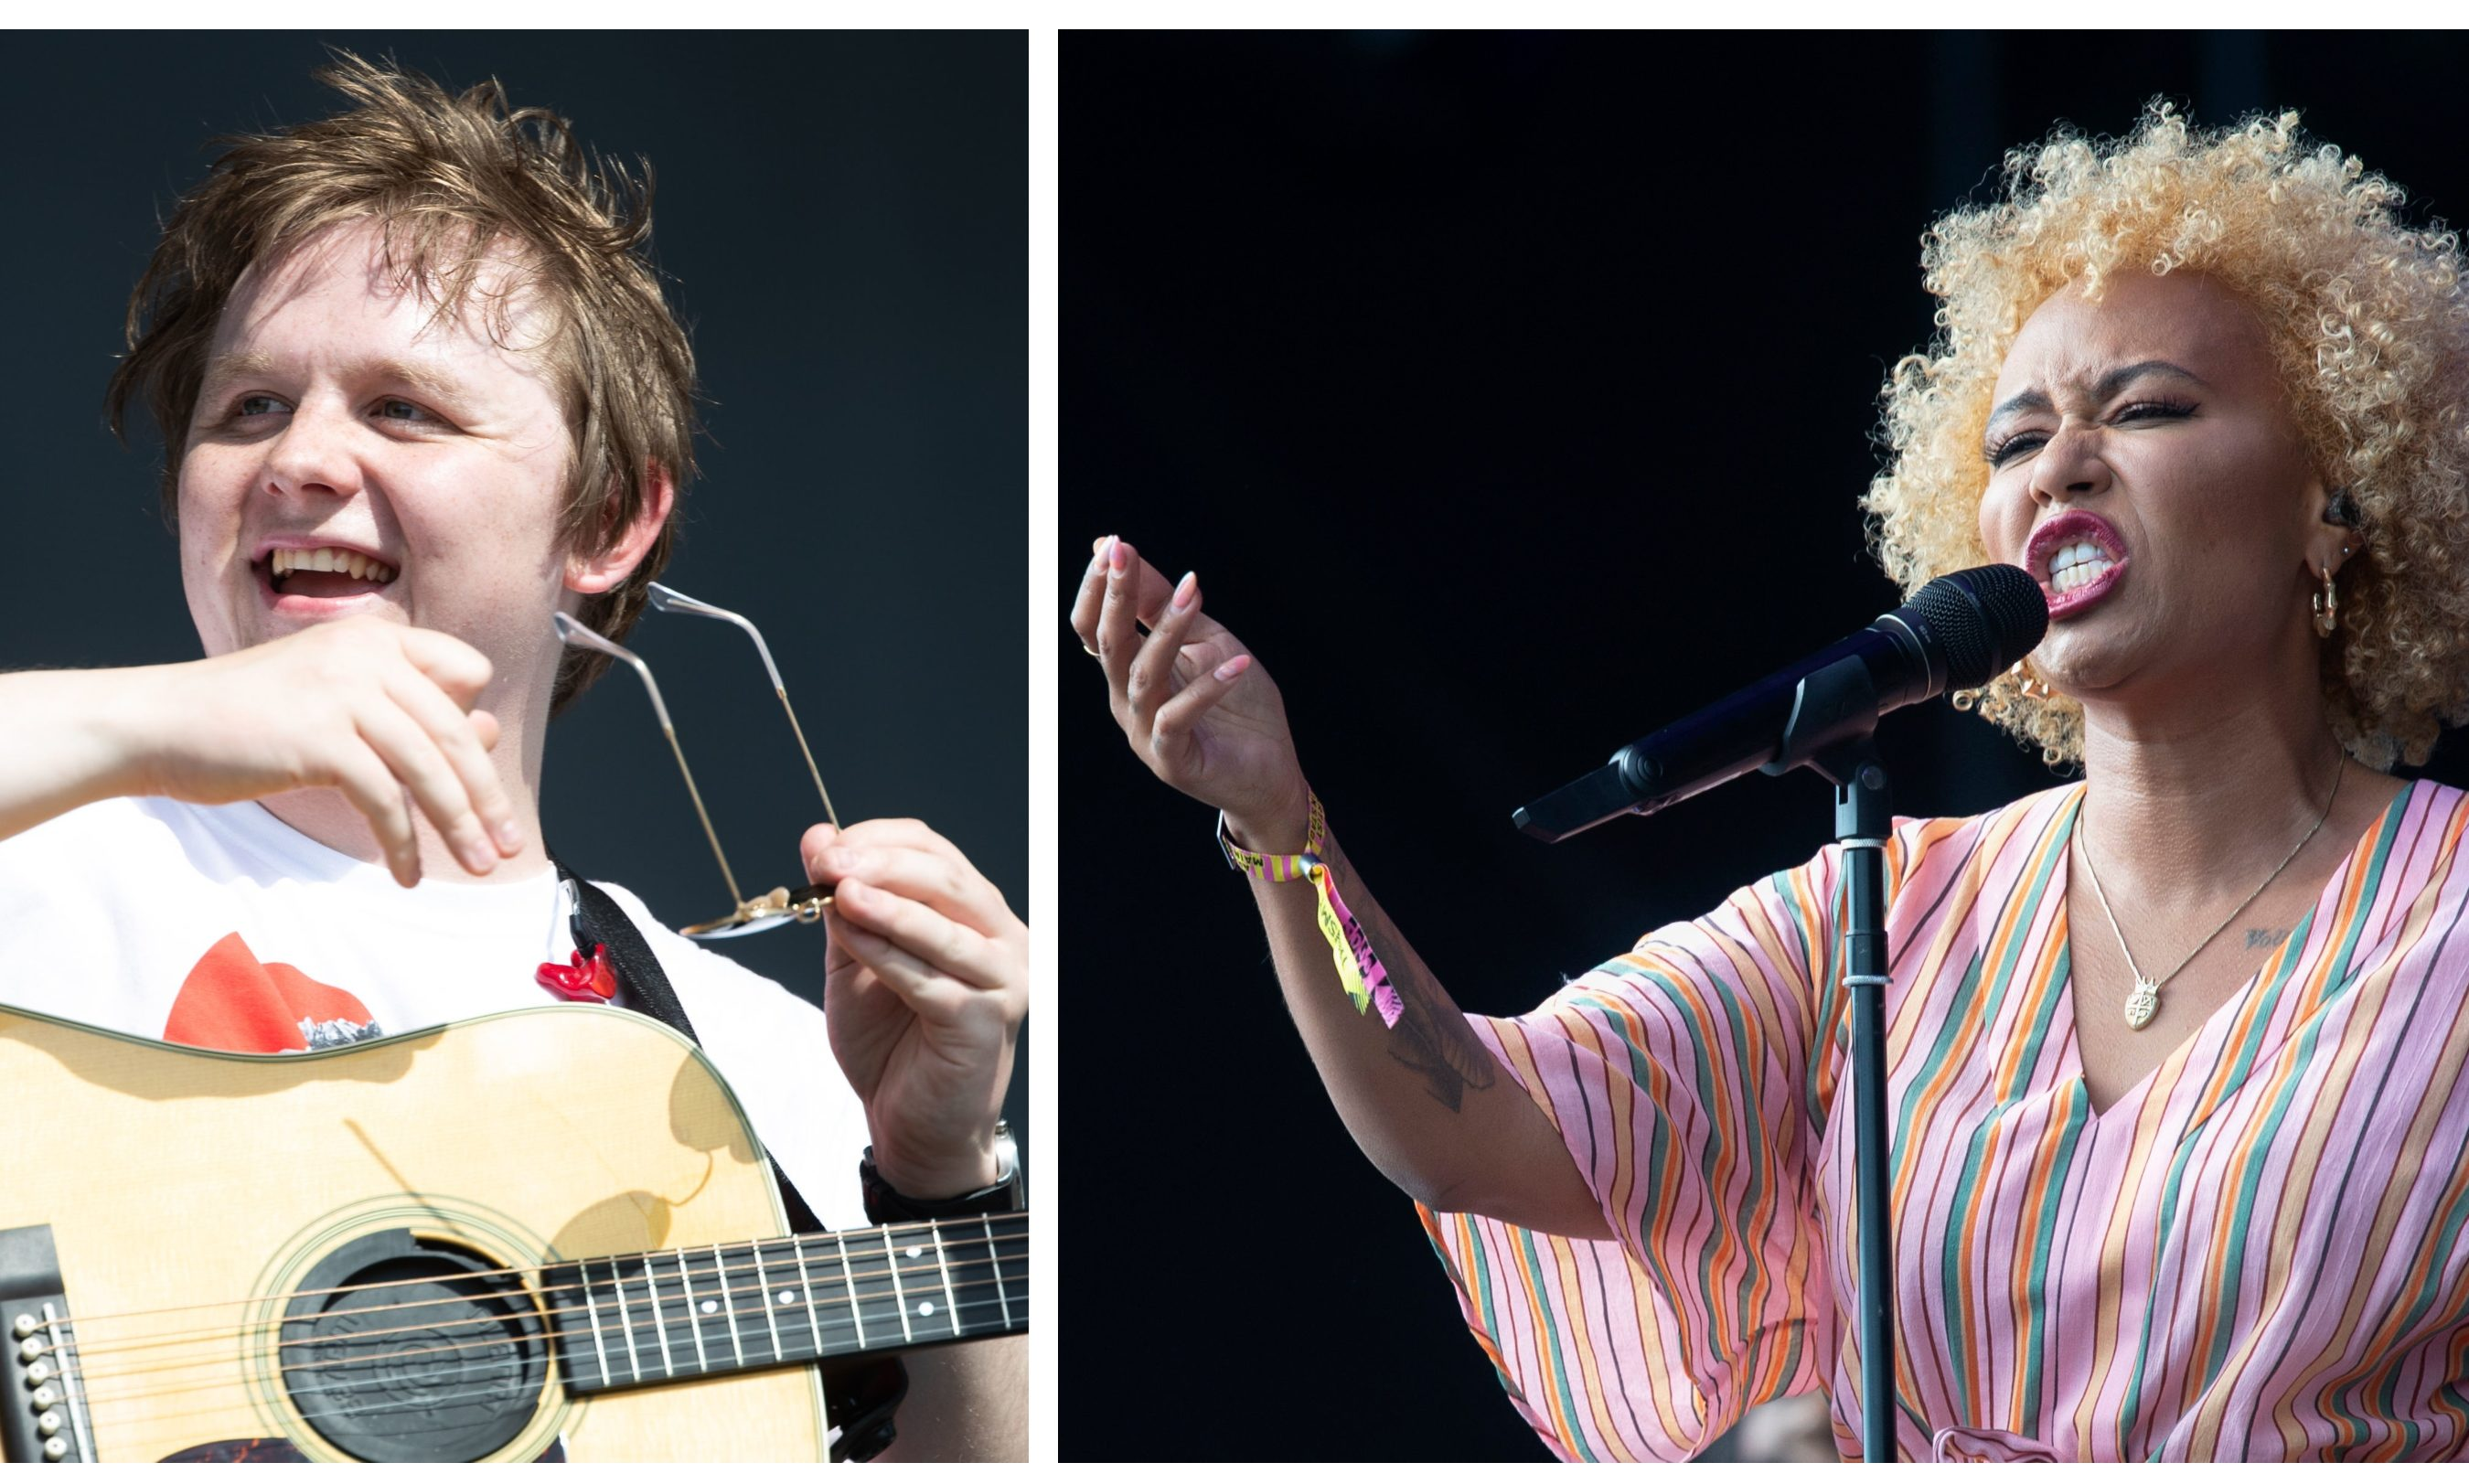 Lewis Capaldi and Emeli Sande are to perform at the P&J Live.